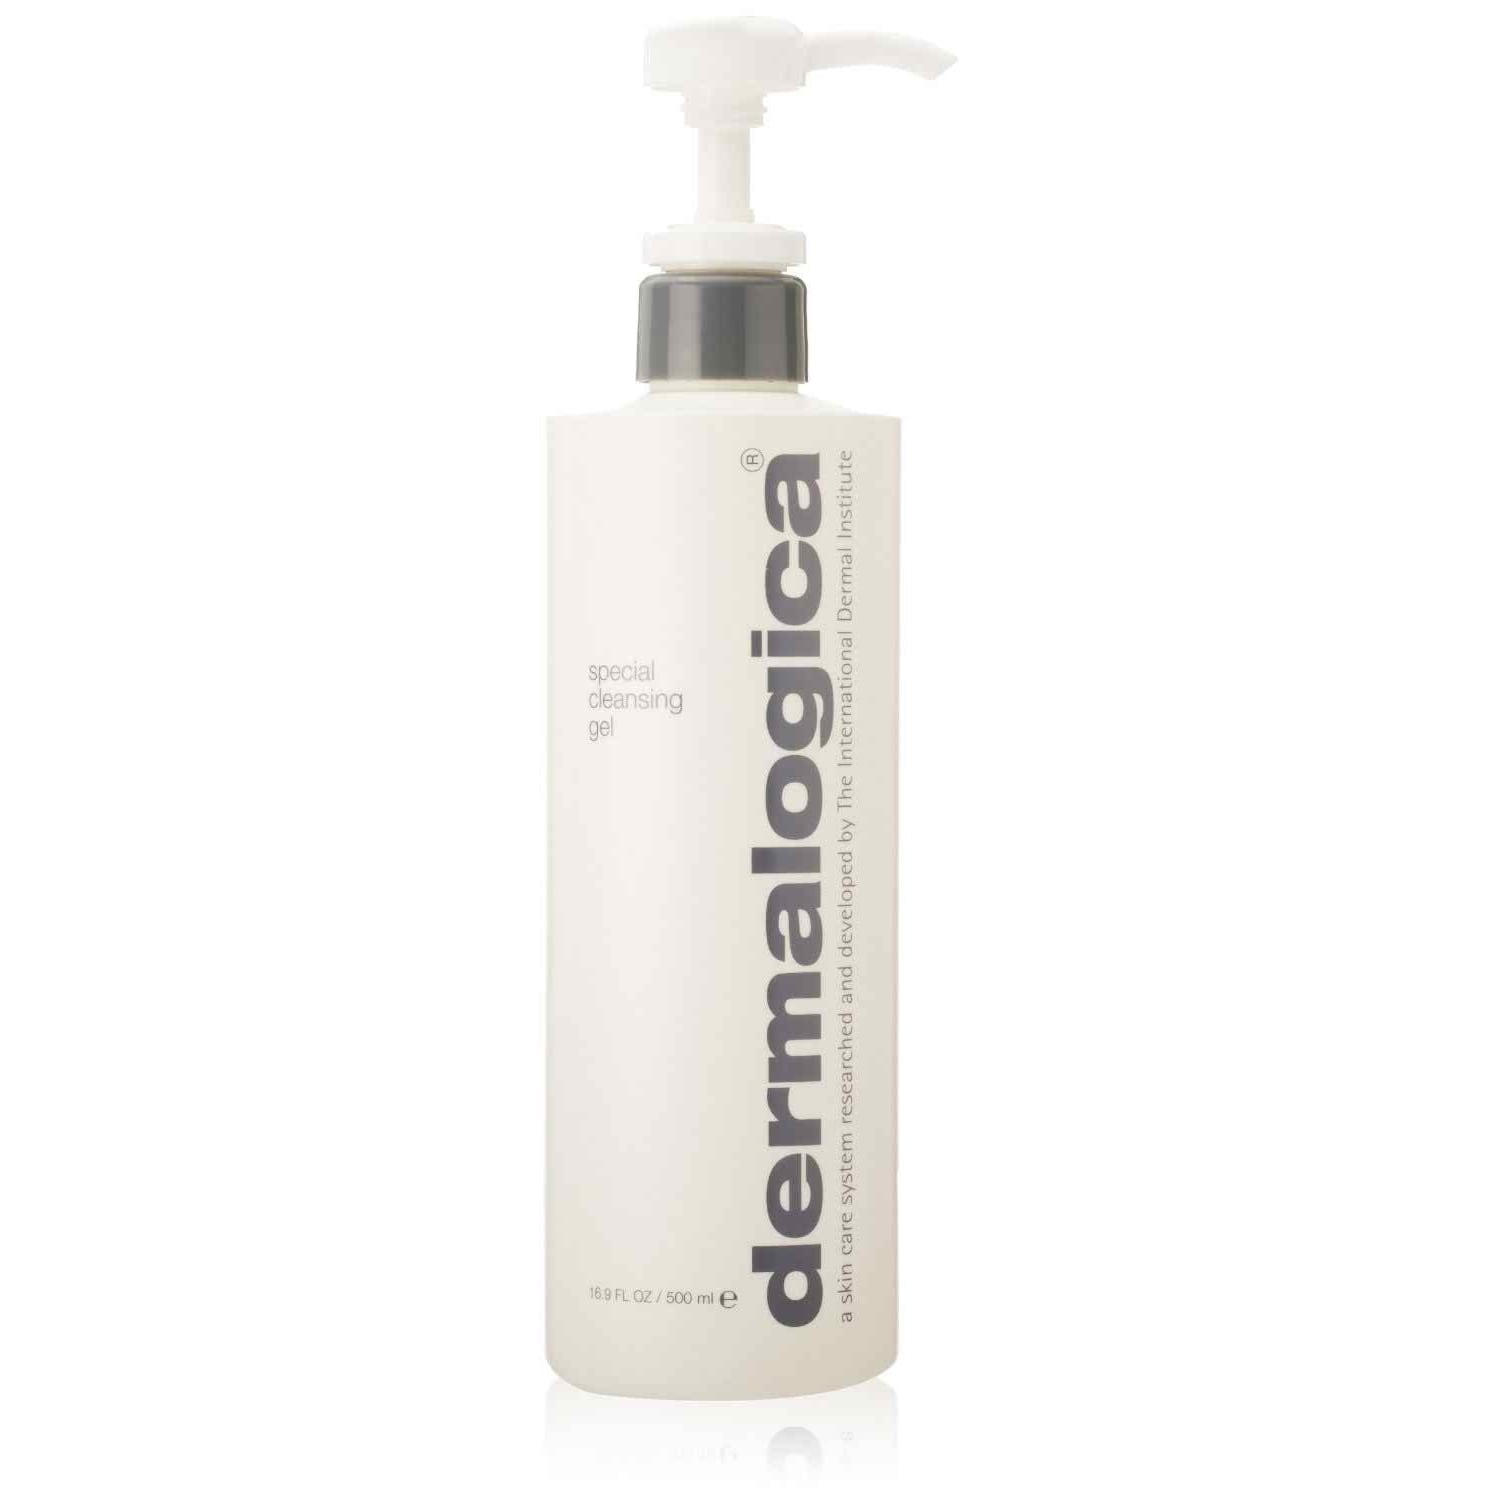 dermalogica special cleansing gel 500ml free delivery